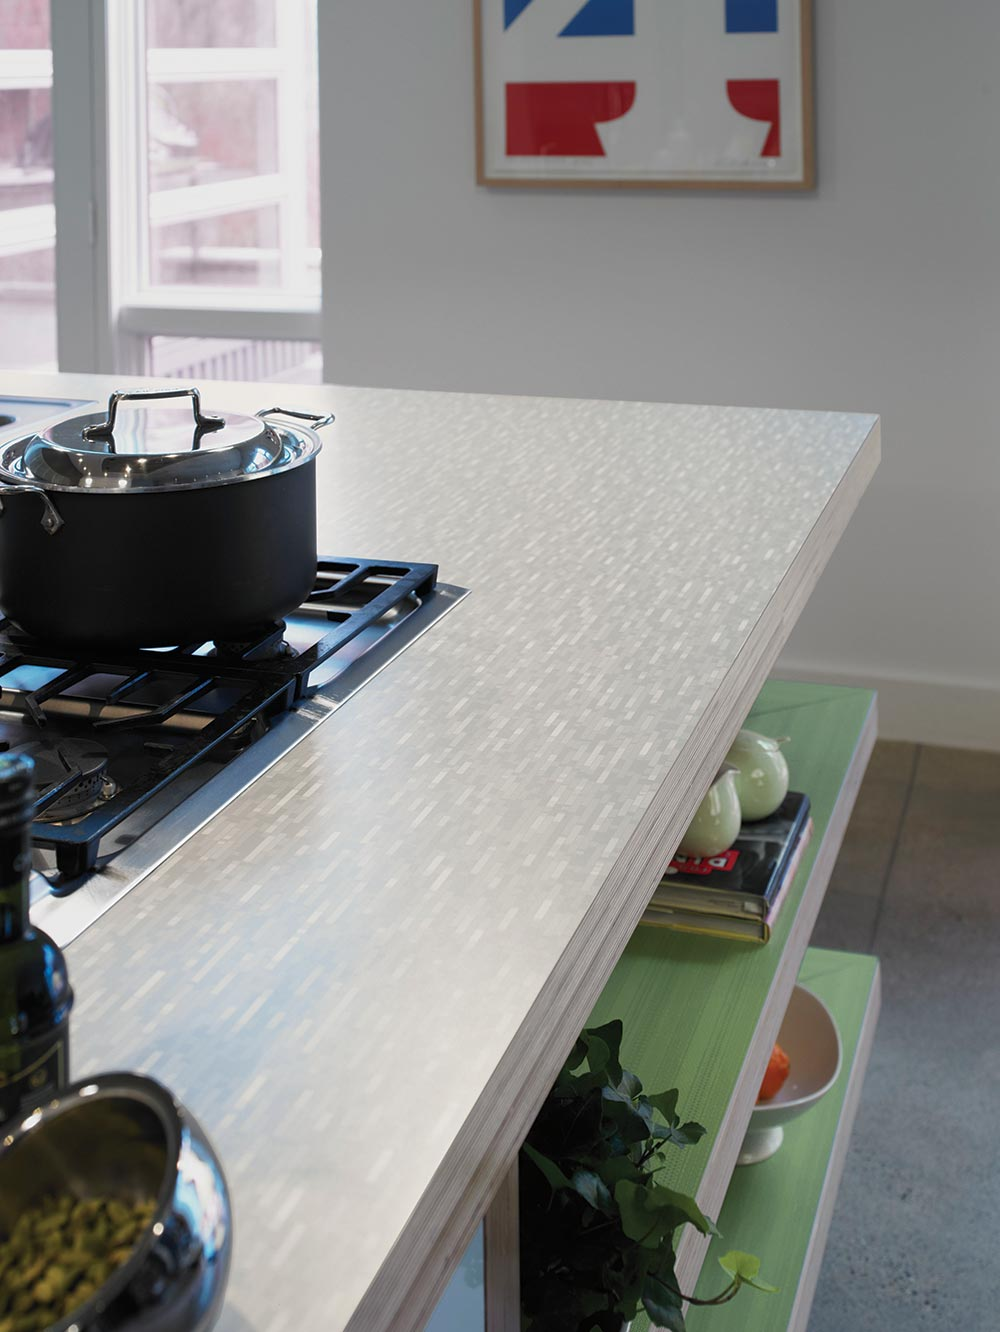 affordable kitchen countertops modern island lighting breaking news: formica's 100th anniversary designs include ...